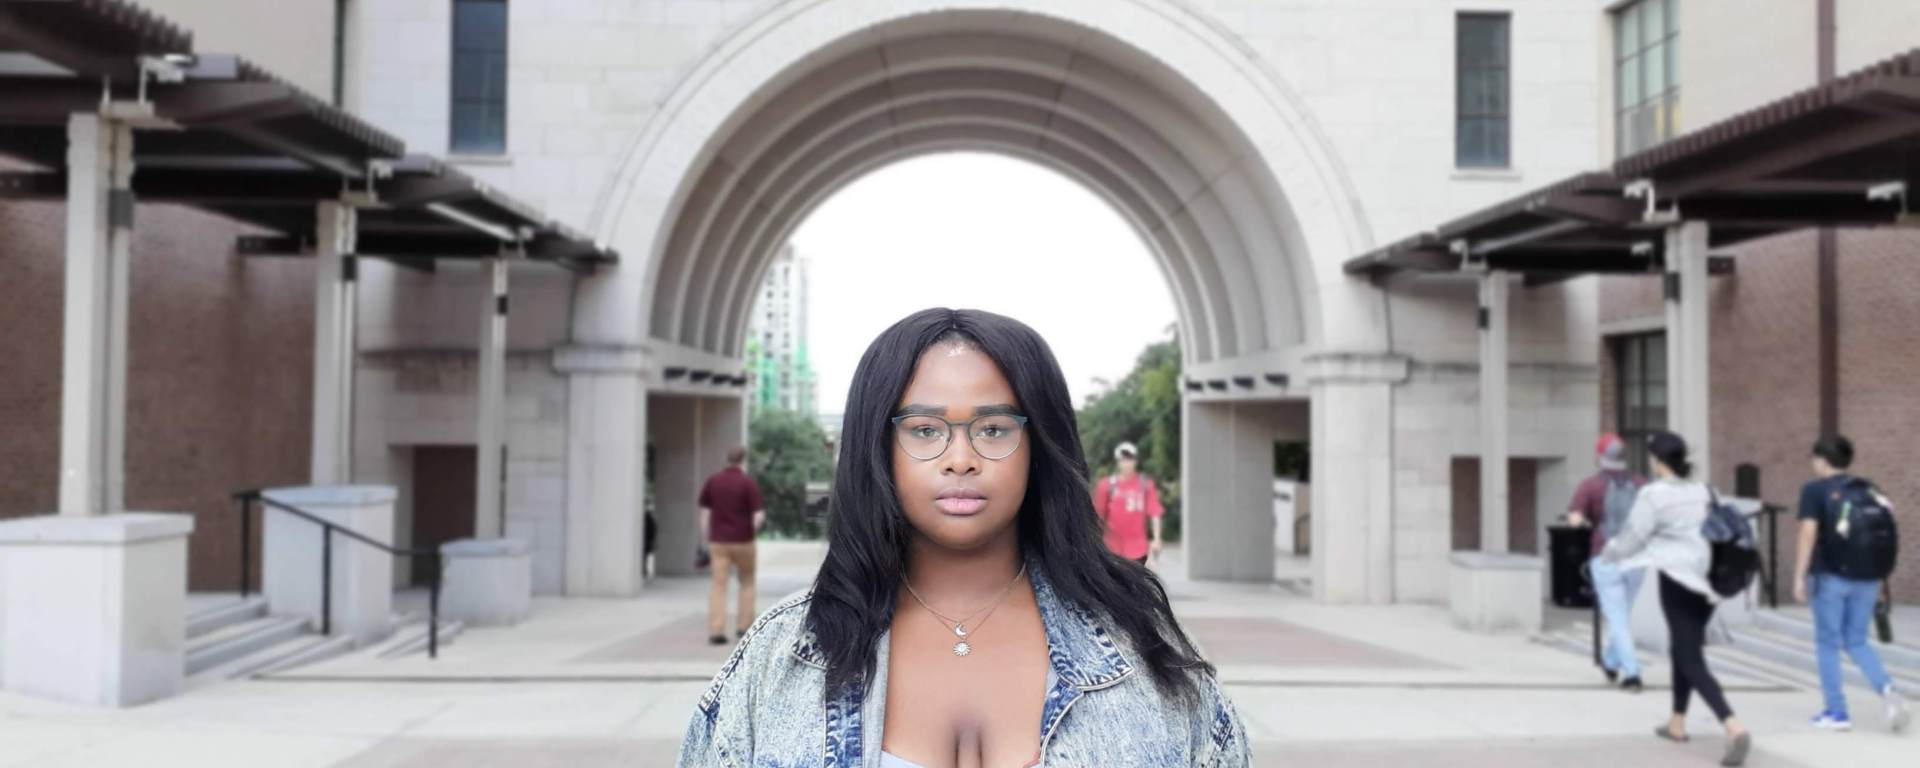 Timia Cobb stands in front of Texas State University UAC arch , wearing glasses, an ash wash grey jean jacket and grey shirt while students walk in the background.